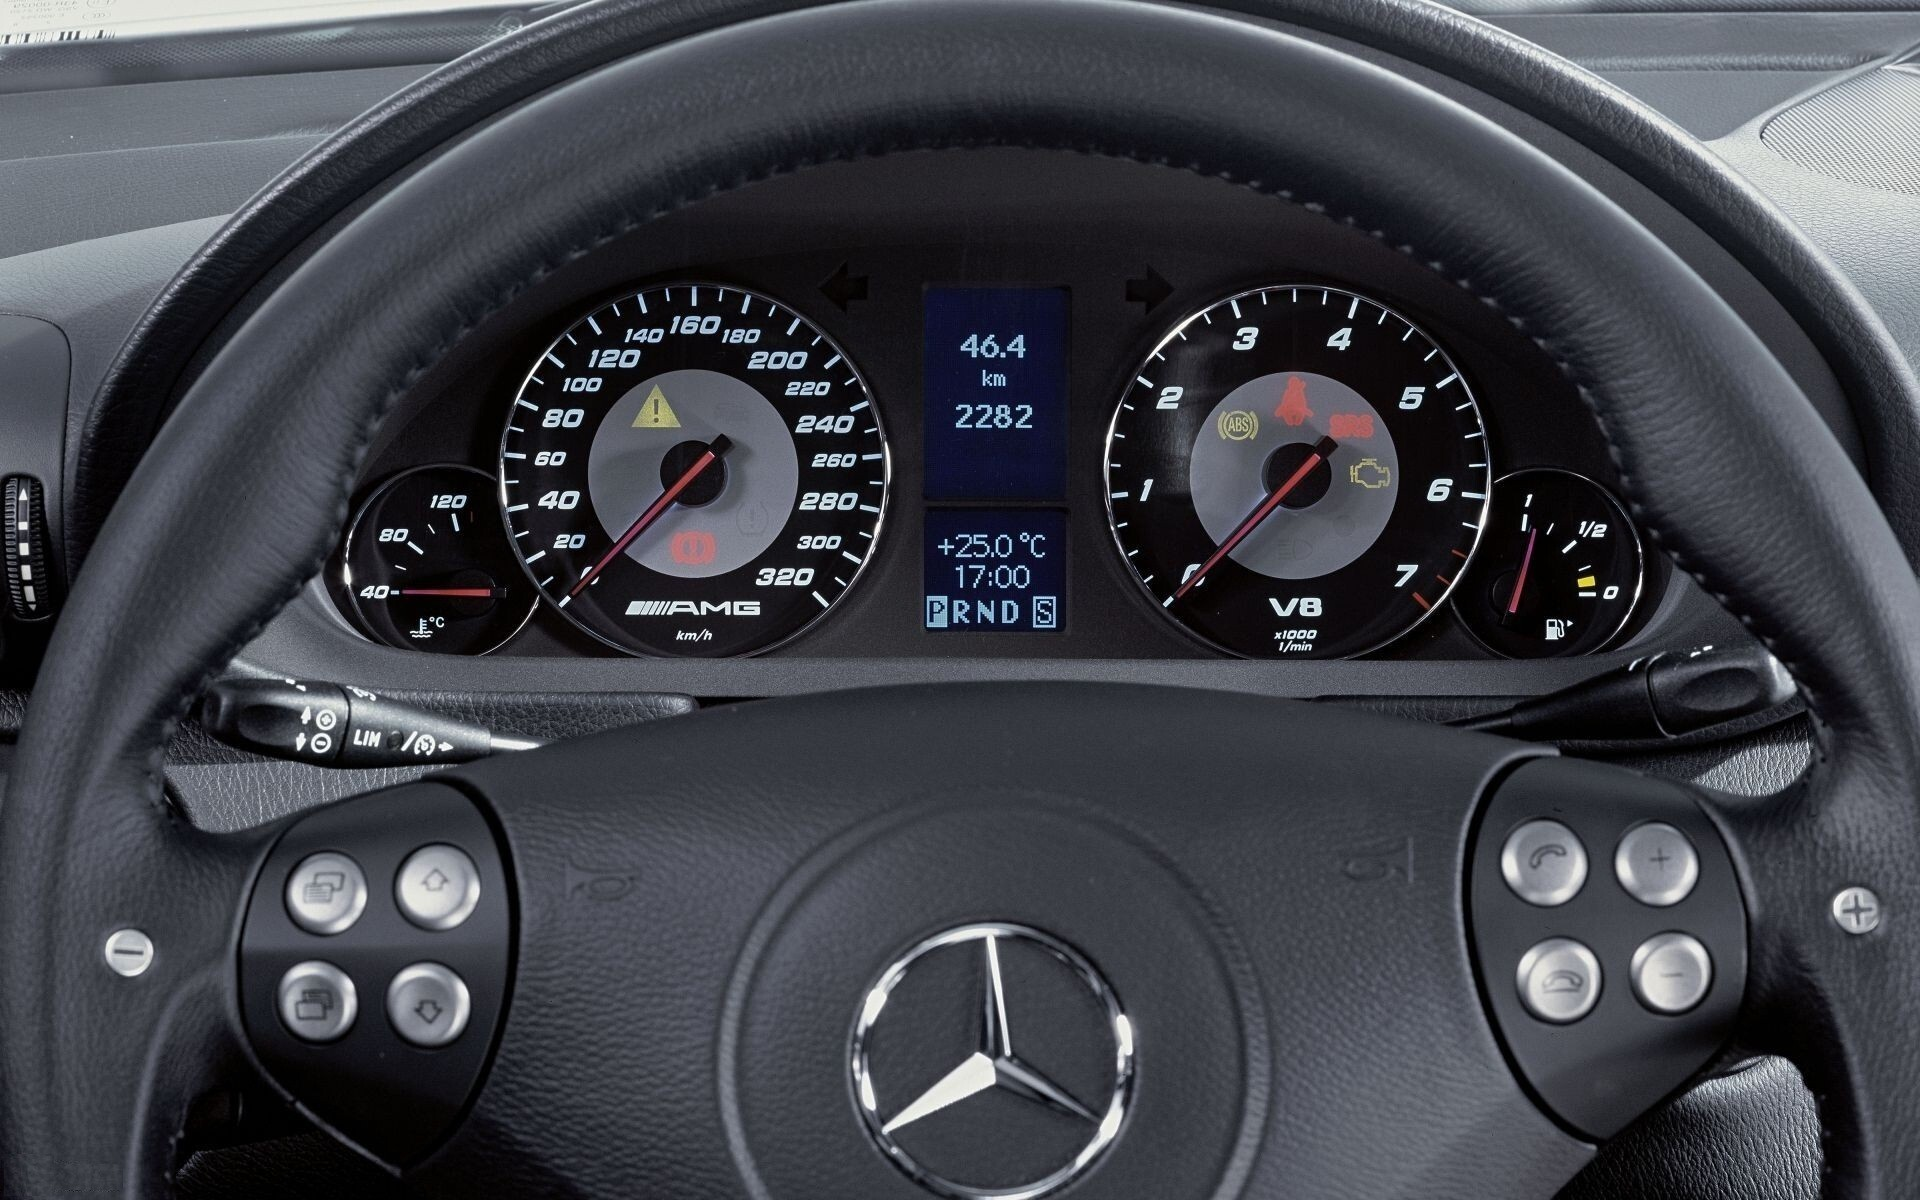 Mercedes Benz C 55 Amg Interior Wallpapers Hd Wallpapers